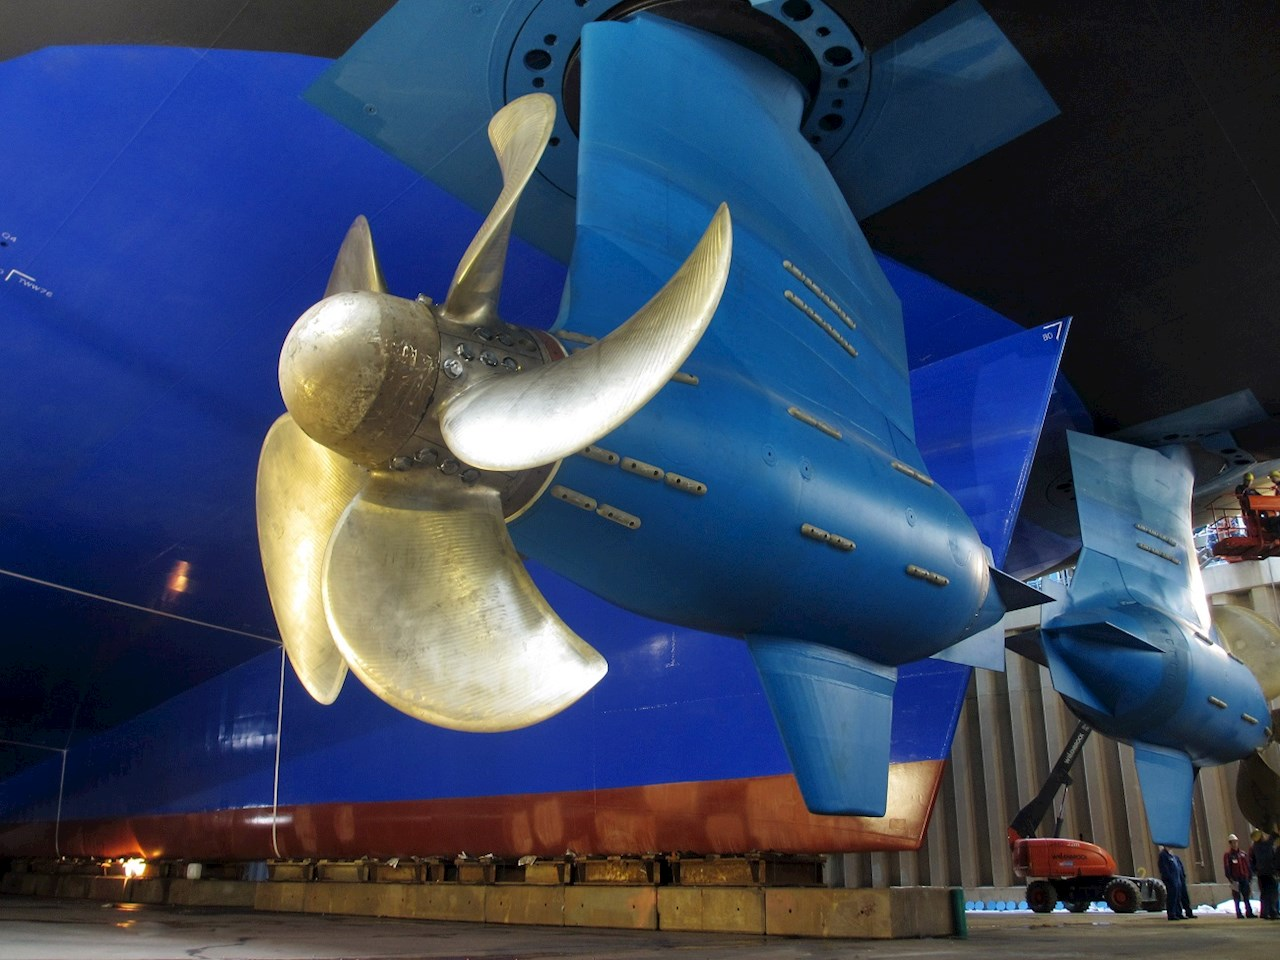 Azipod® propulsion is a gearless steerable propulsion system where the electric drive motor is housed within a pod outside the ship hull.